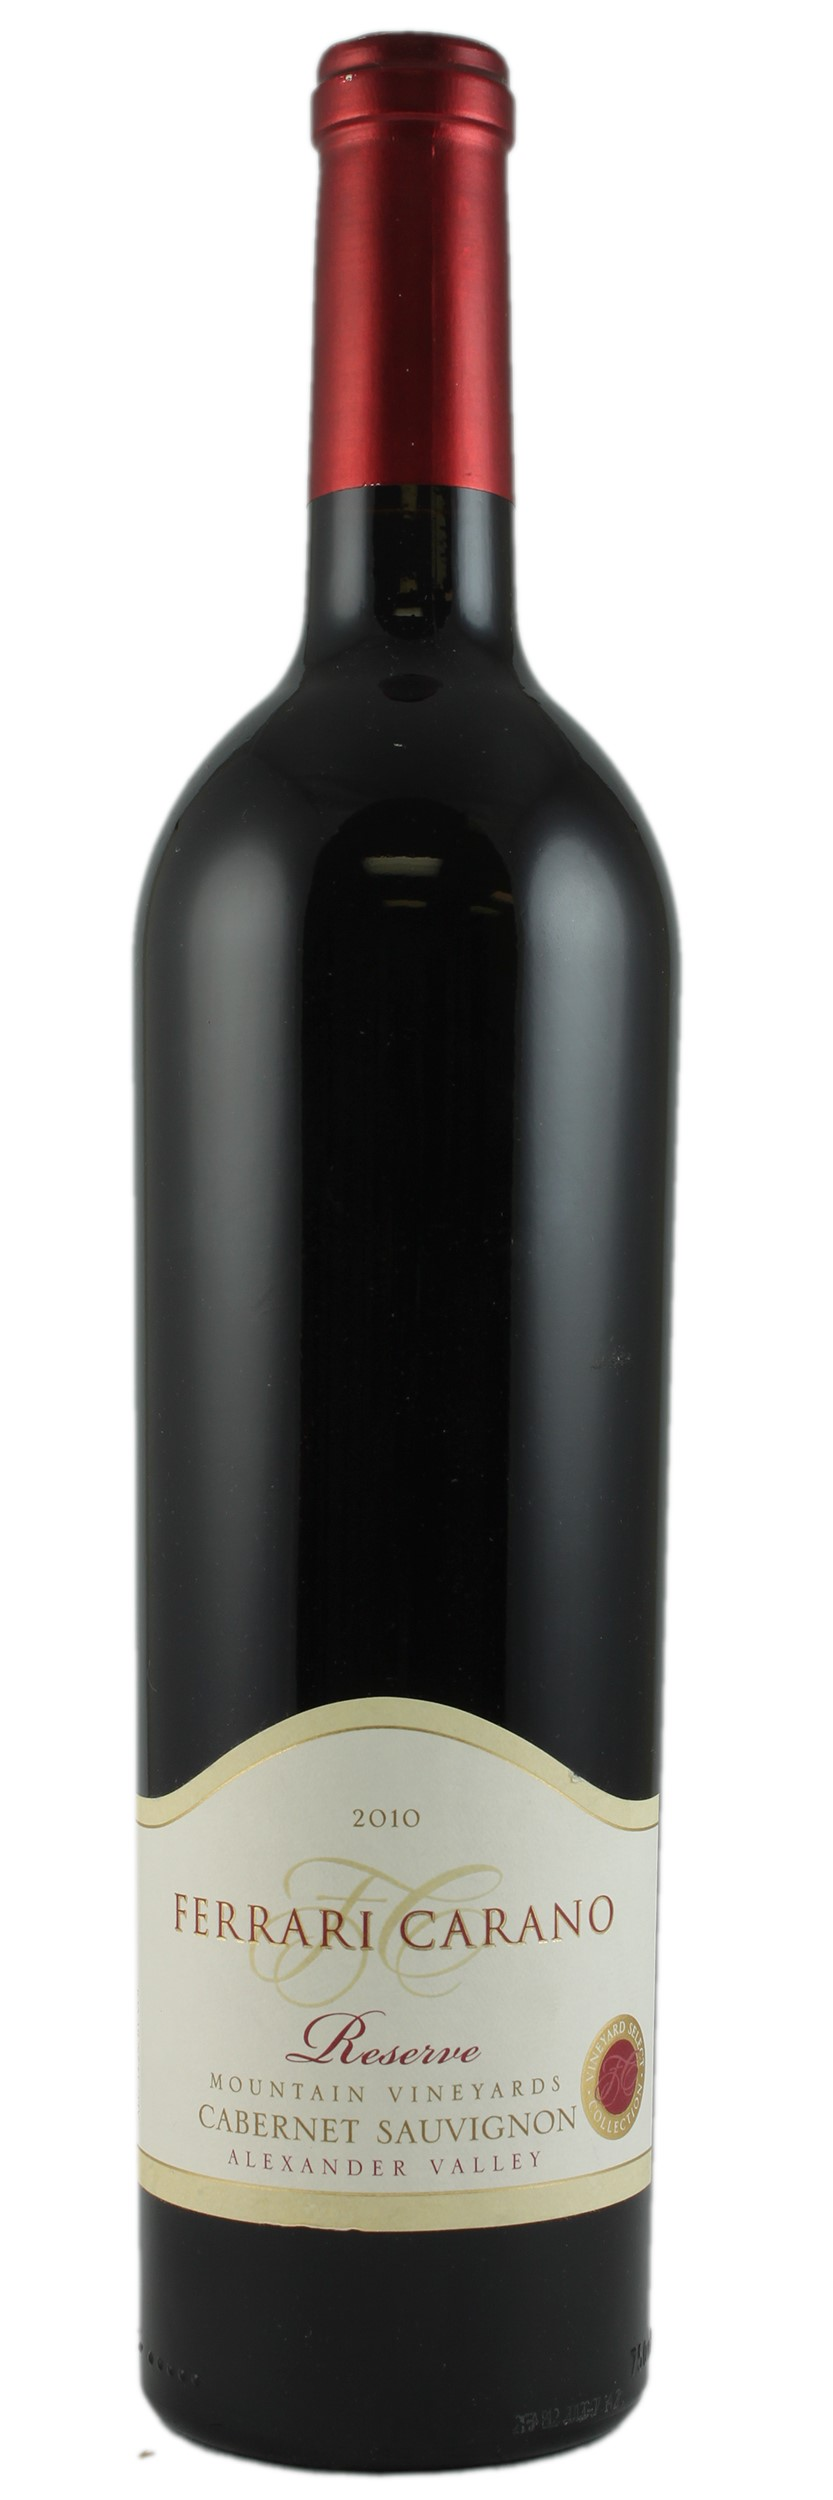 /BuyWine/Item/BuyNow/1039936/2010 Ferrari Carano  Mountain Vineyards Reserve Cab~